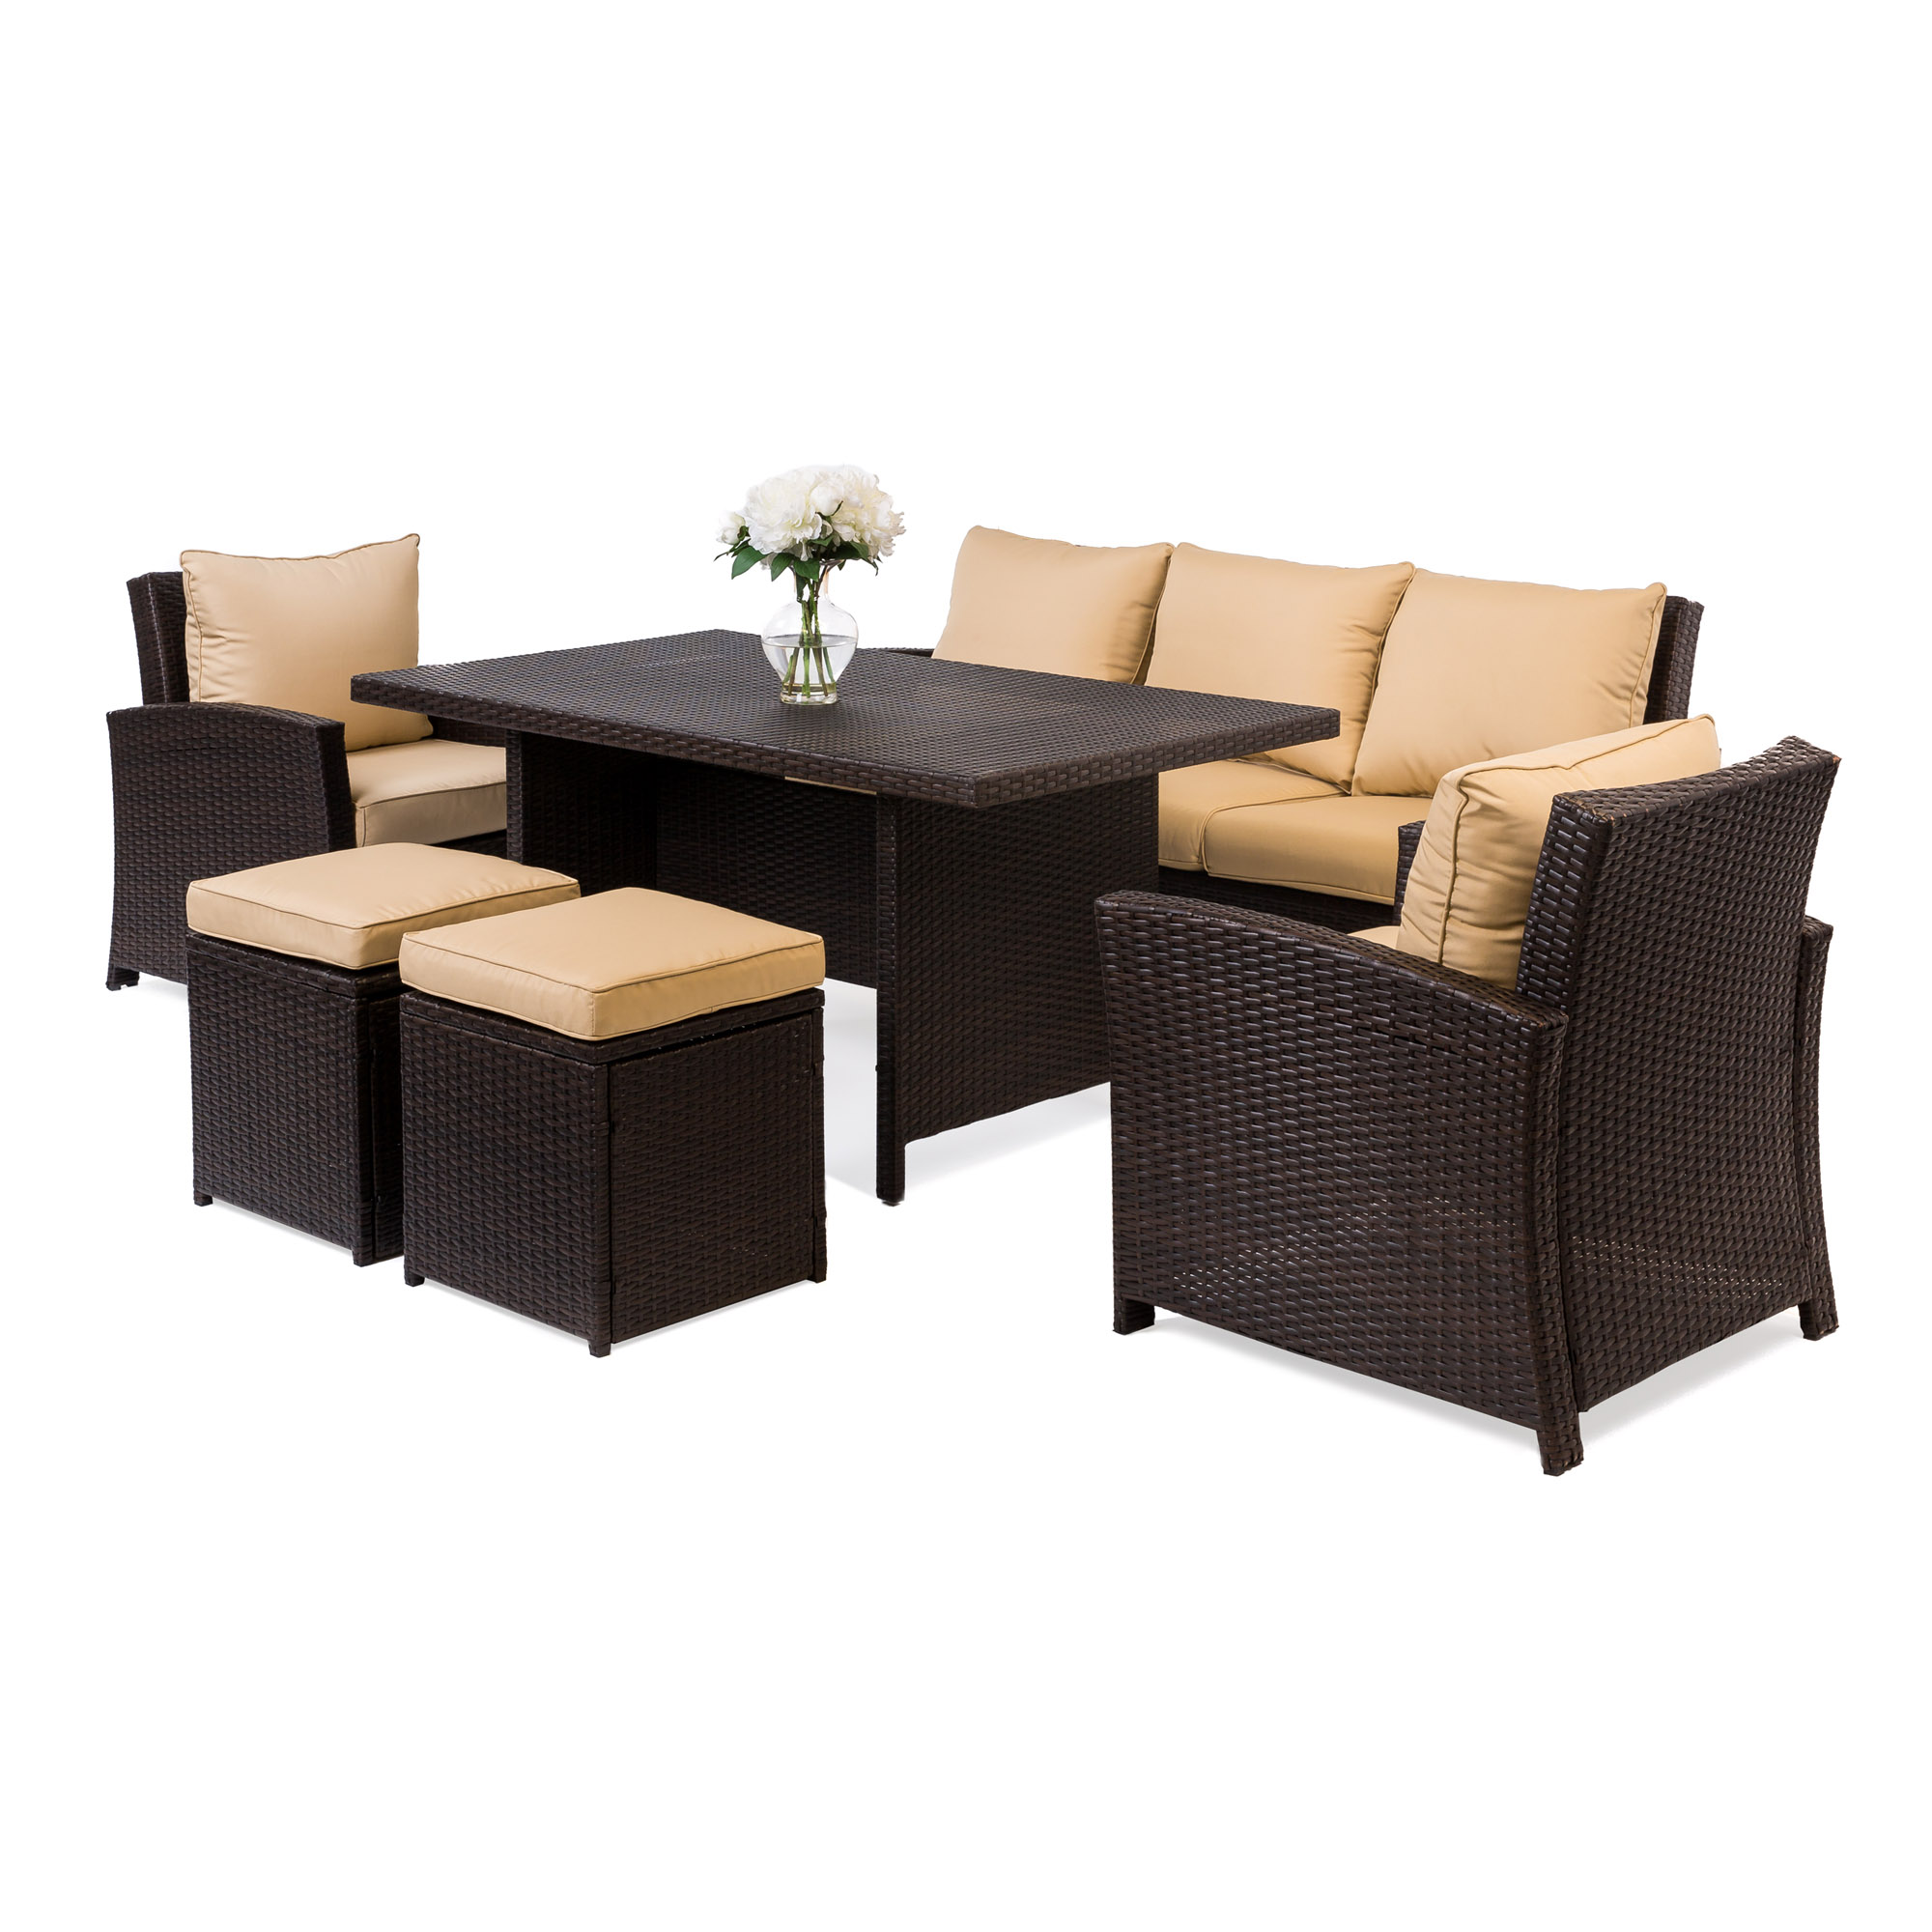 Brown Weather-Resistant Outdoor Living Furniture w// 7 Seats Cushions Best Choice Products 6-Piece Modular Patio Wicker Dining Sofa Set